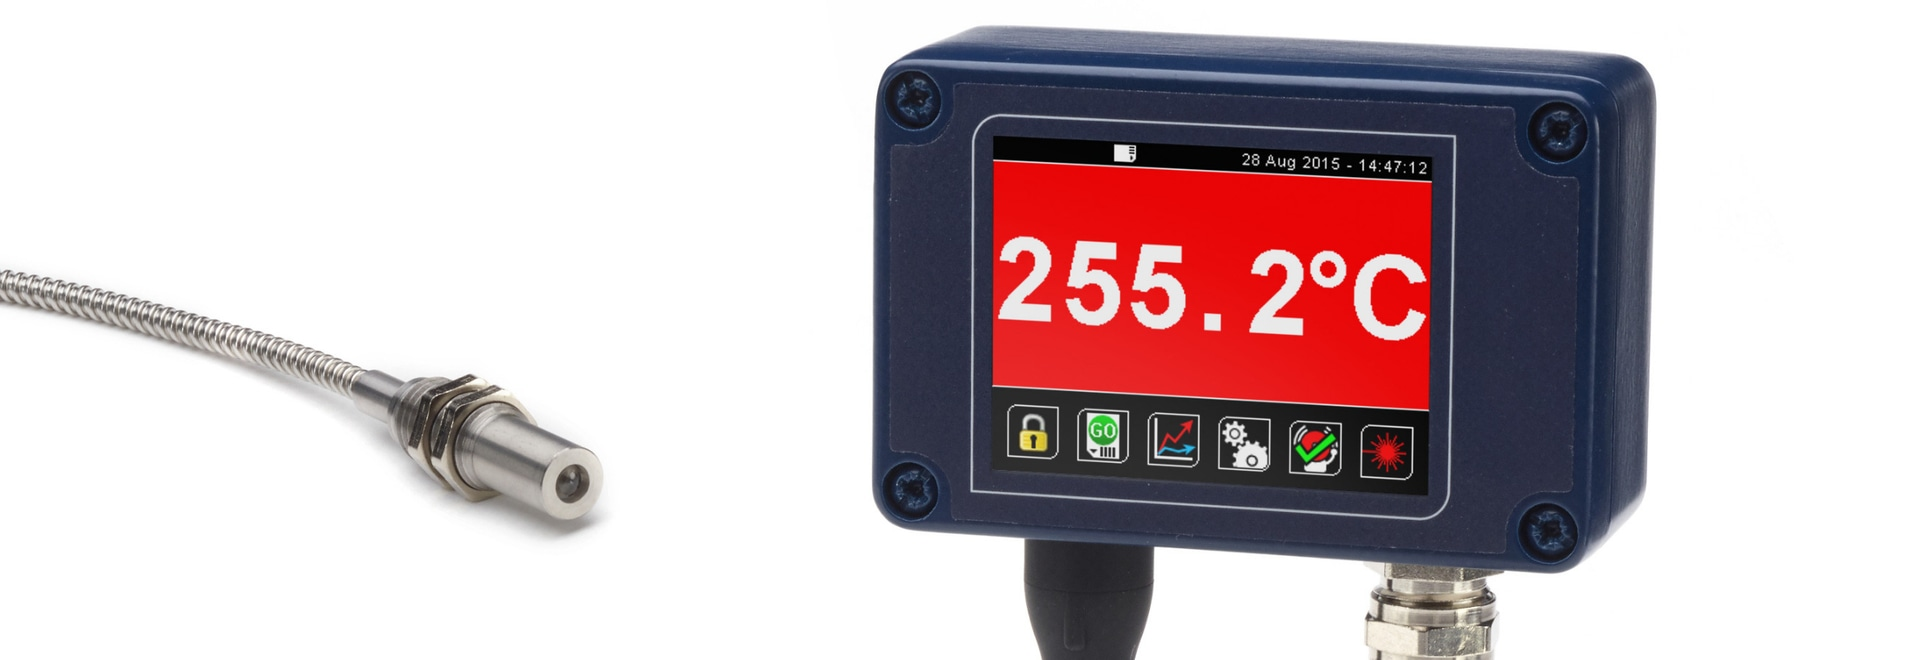 New Pyrometer for High-Temperature Applications and Metals